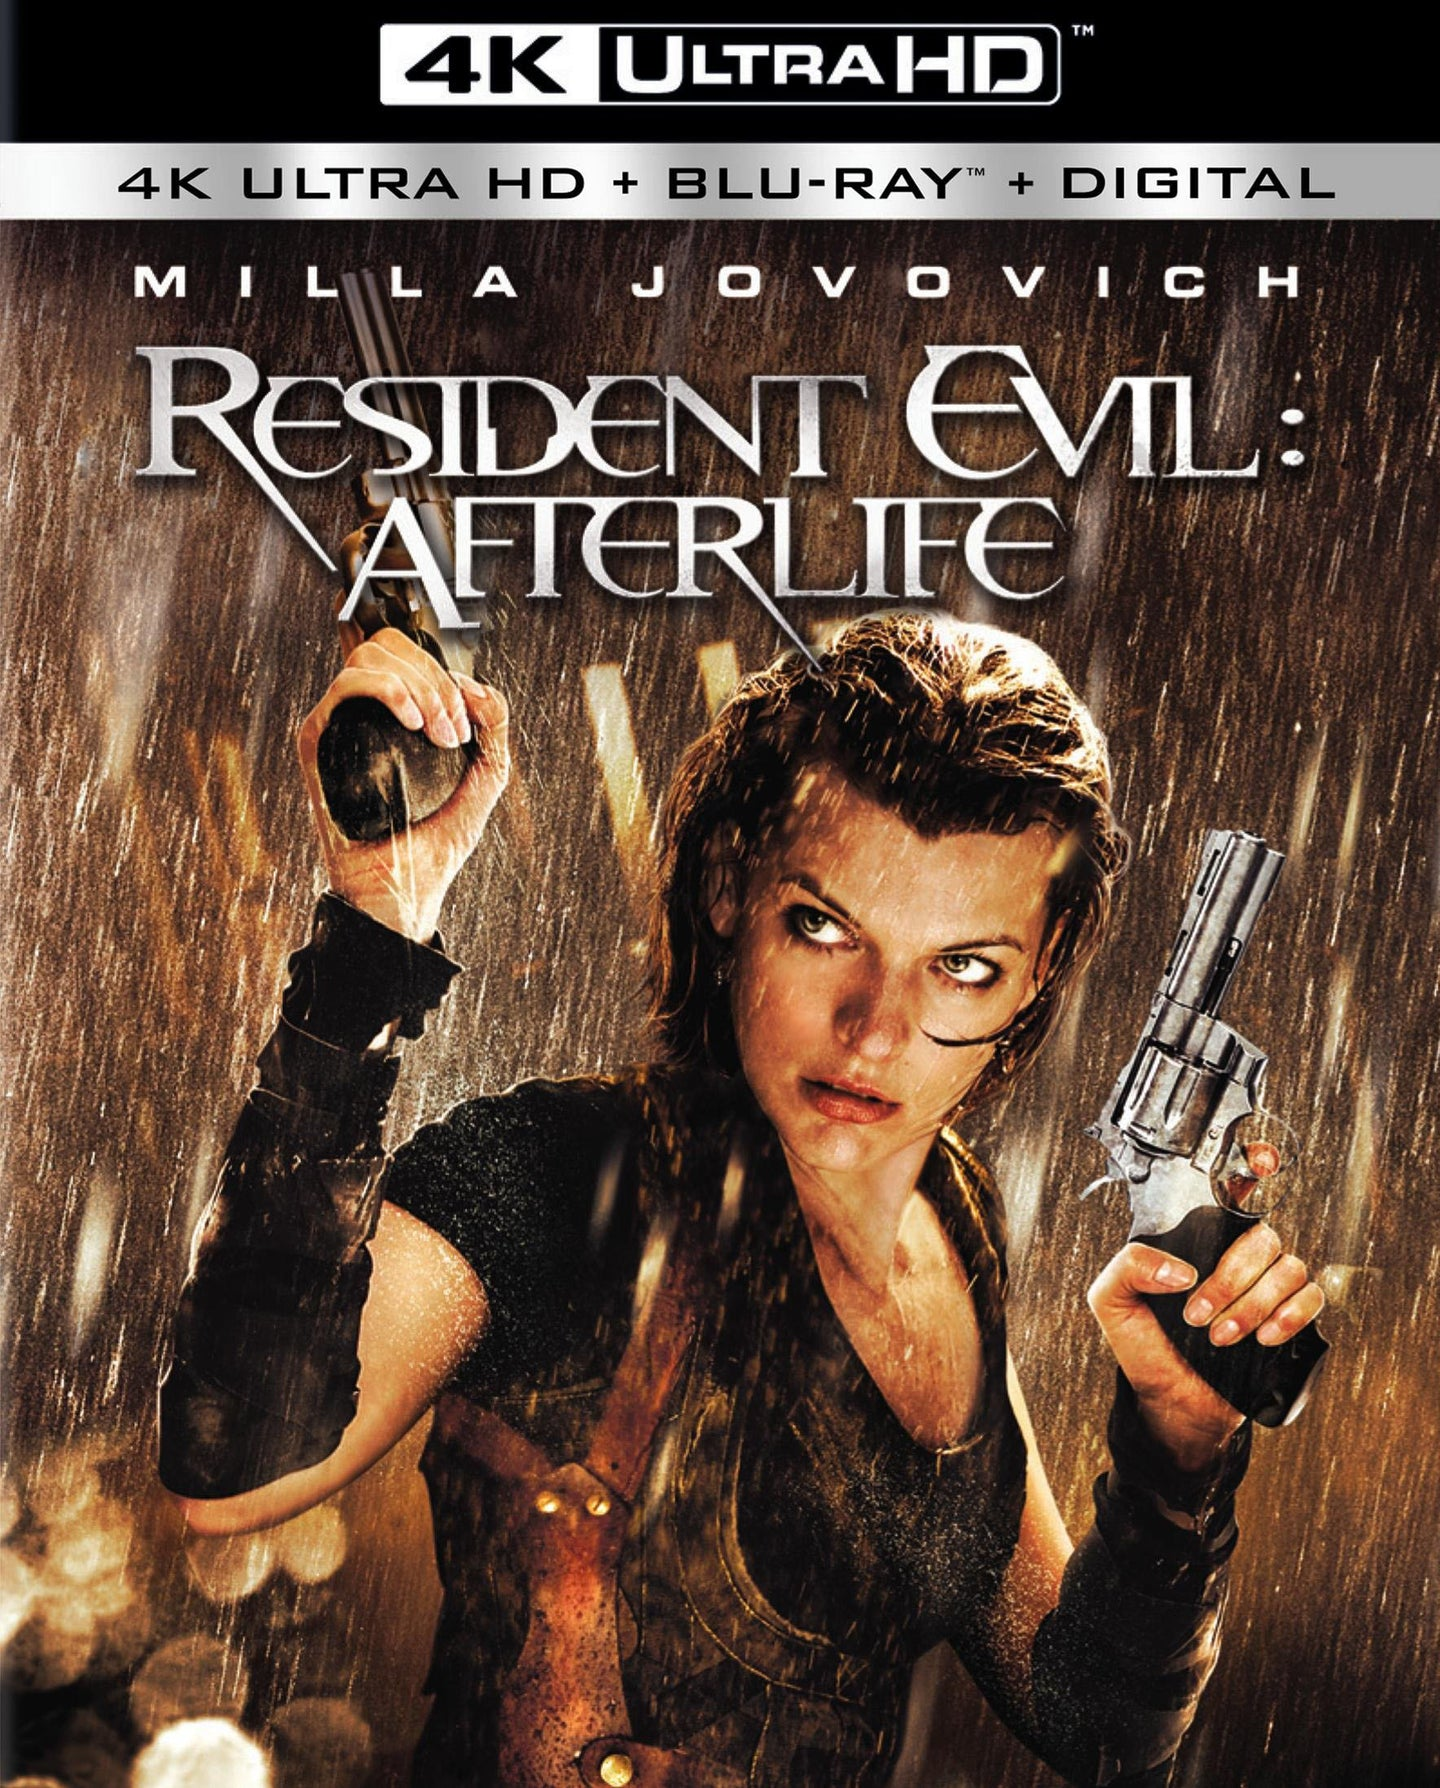 Resident Evil: Afterlife (2010) Vudu or Movies Anywhere 4K code